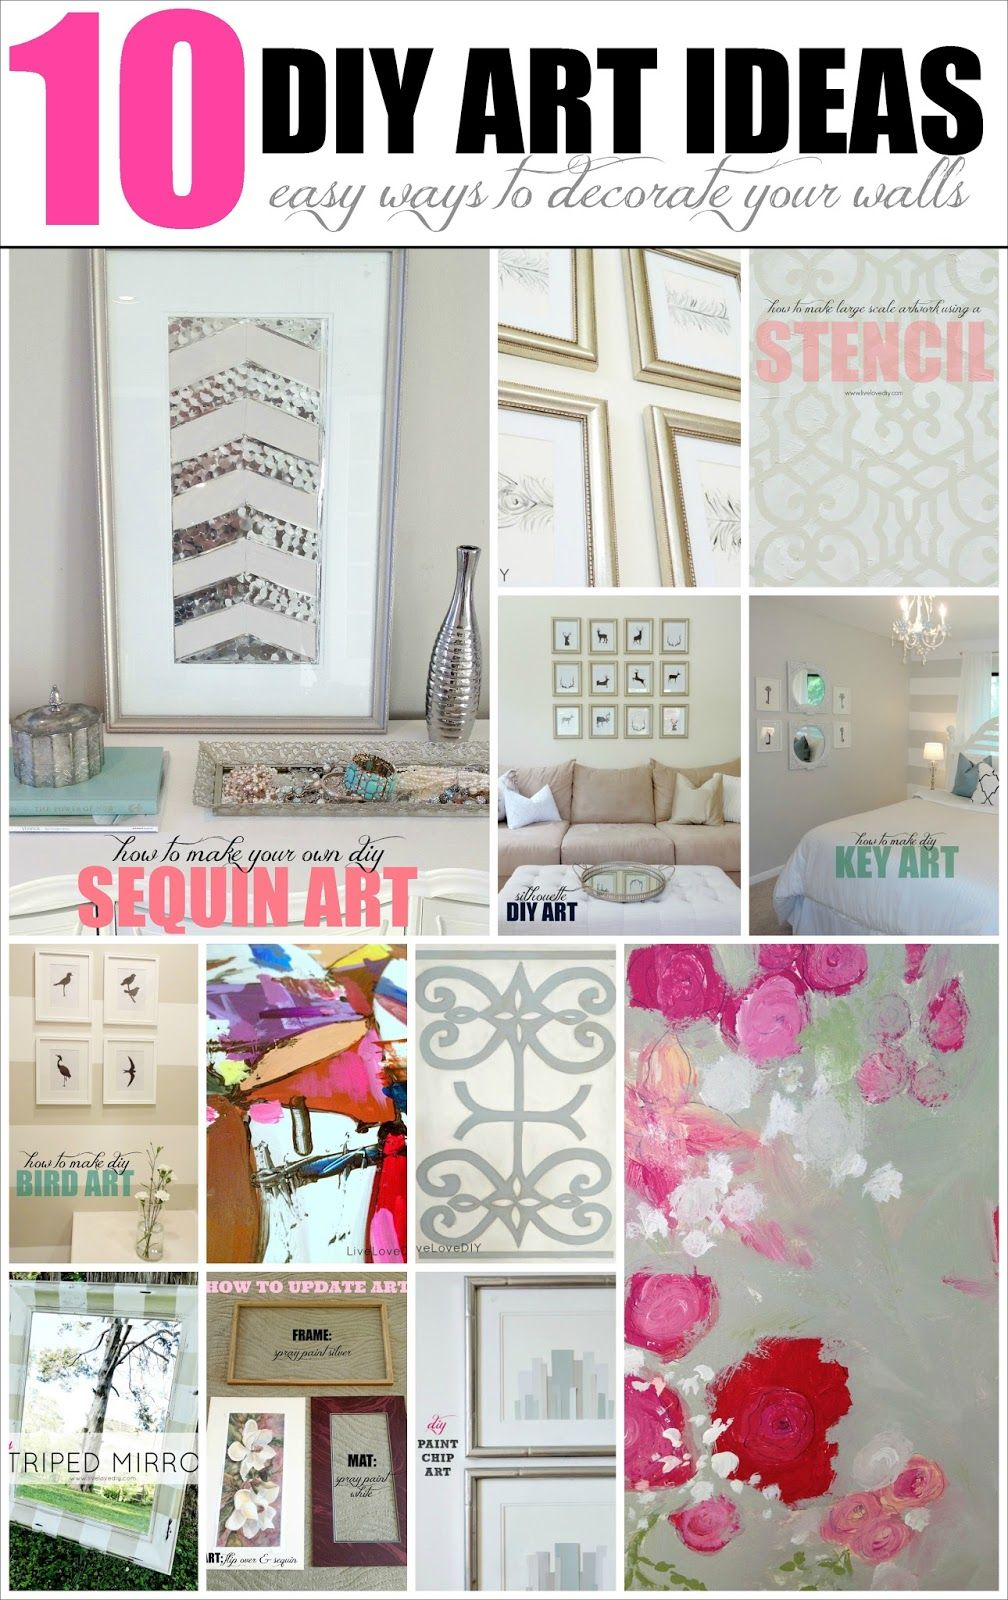 1000 images about diy organizasion and room decor on pinterest easy room ideas easy room